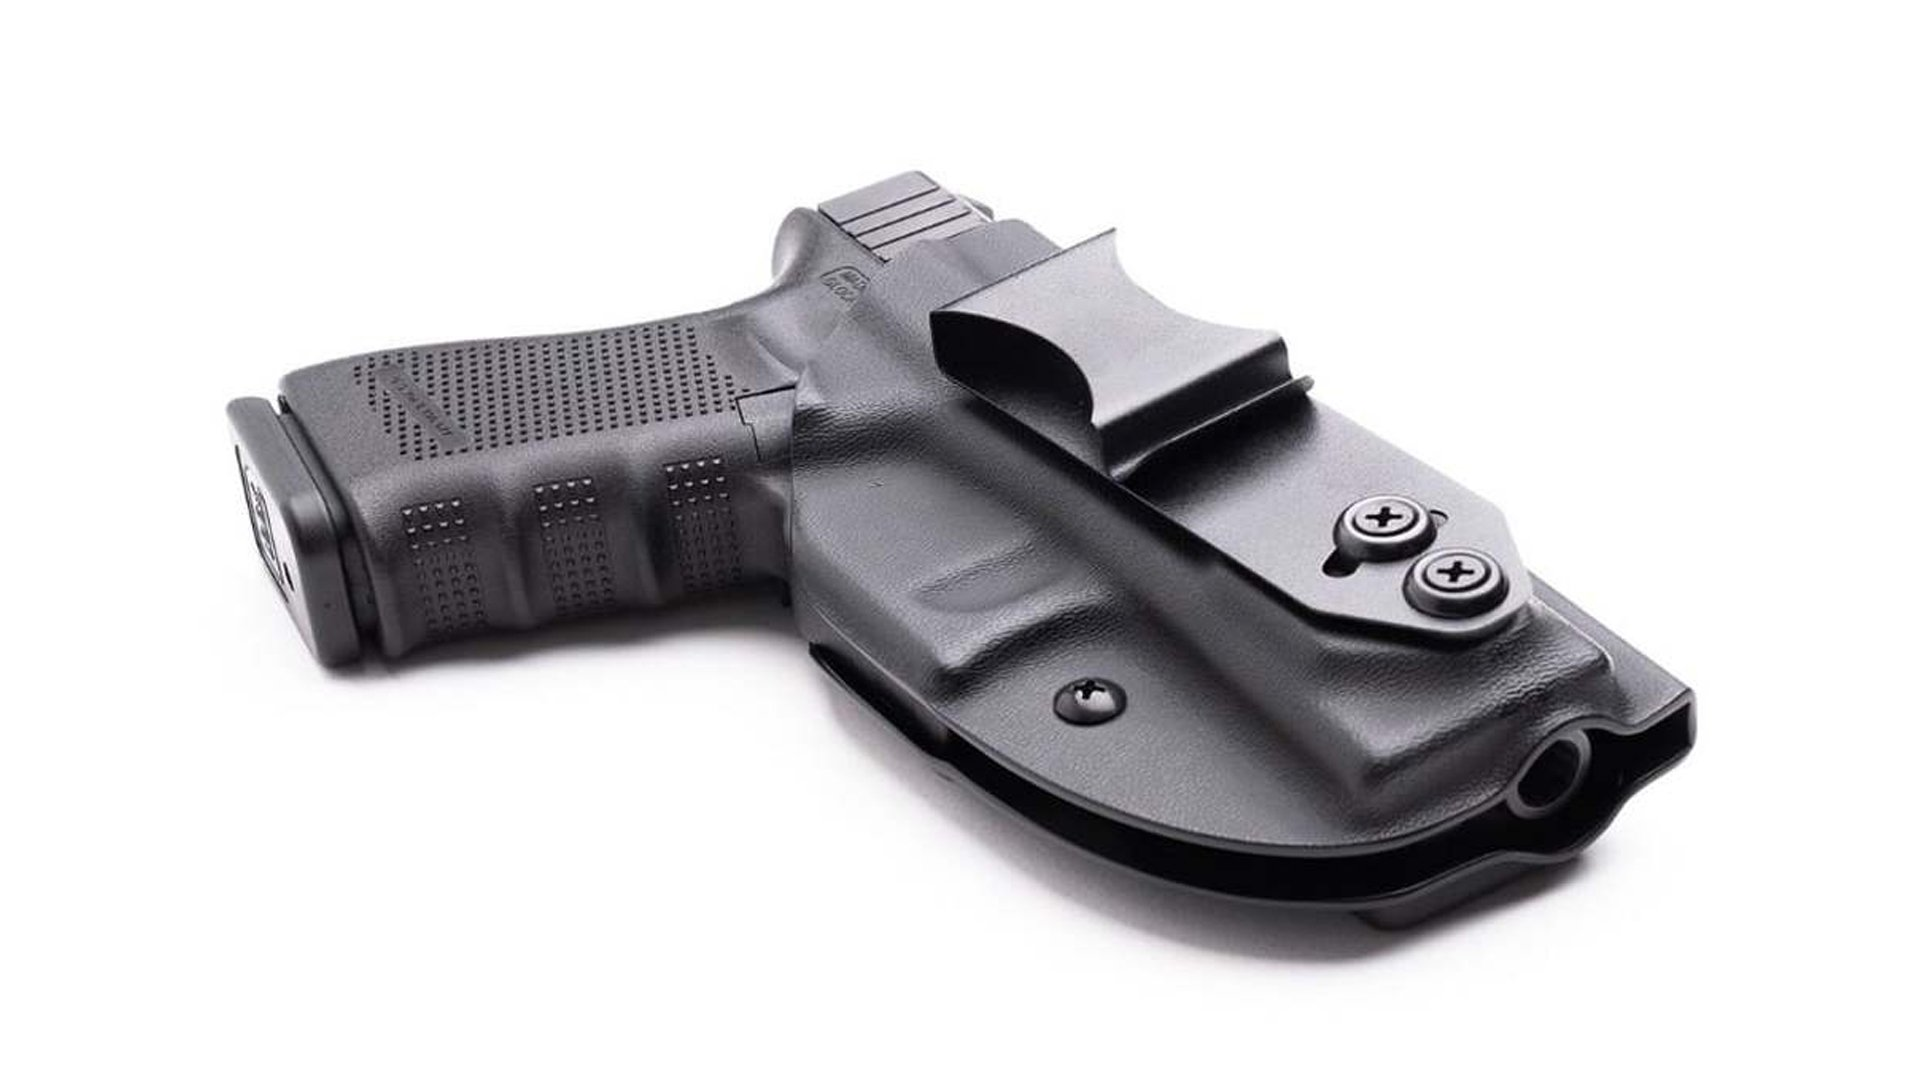 Vedder-LightTuck-Holster-Review---1